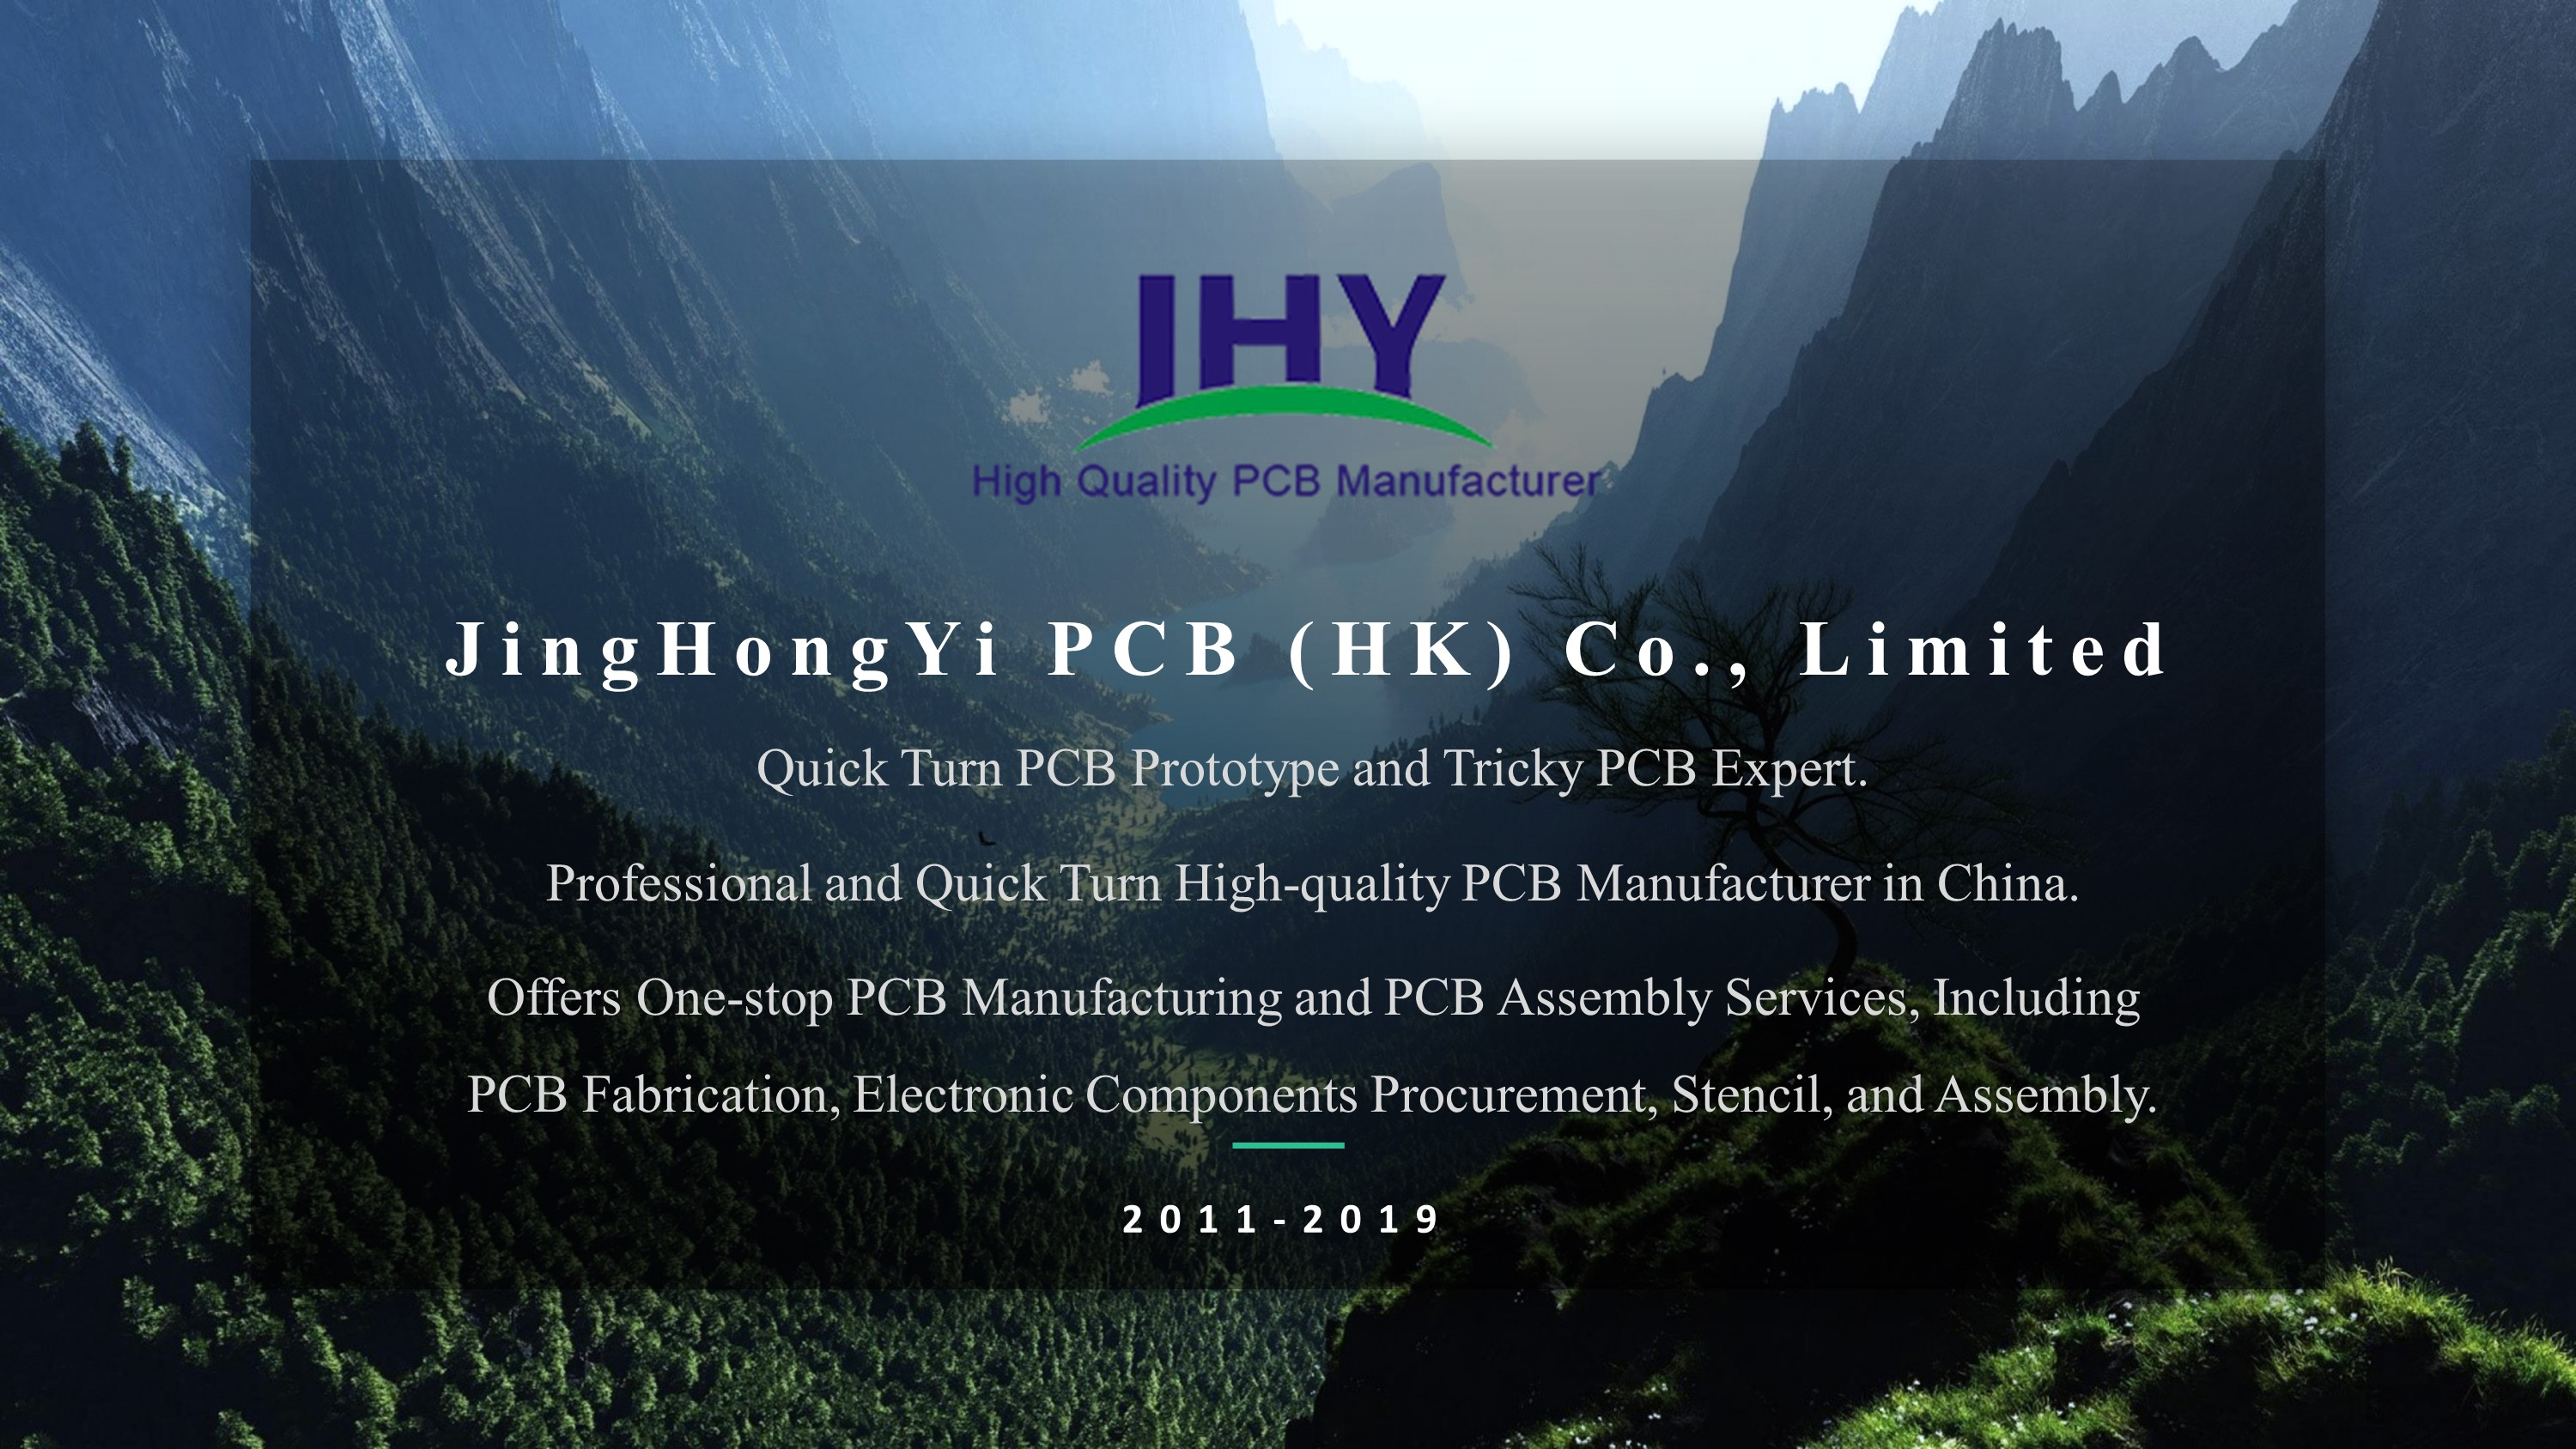 As The Best PCB + PCBA Manufacturer, We Are Your Best Choice.